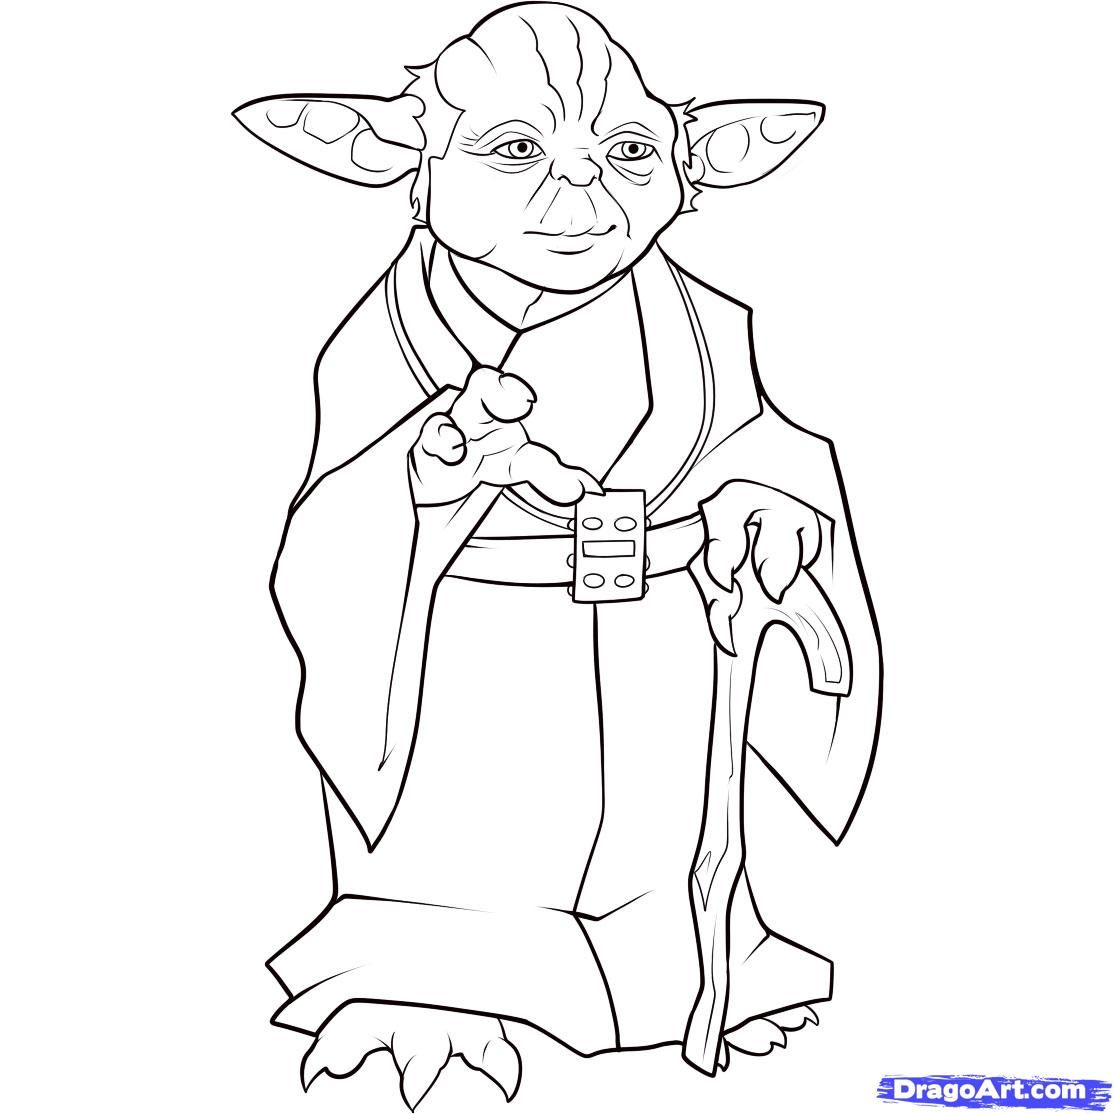 Yoda Coloring Page Party Ideas Pinterest Star Bulletin